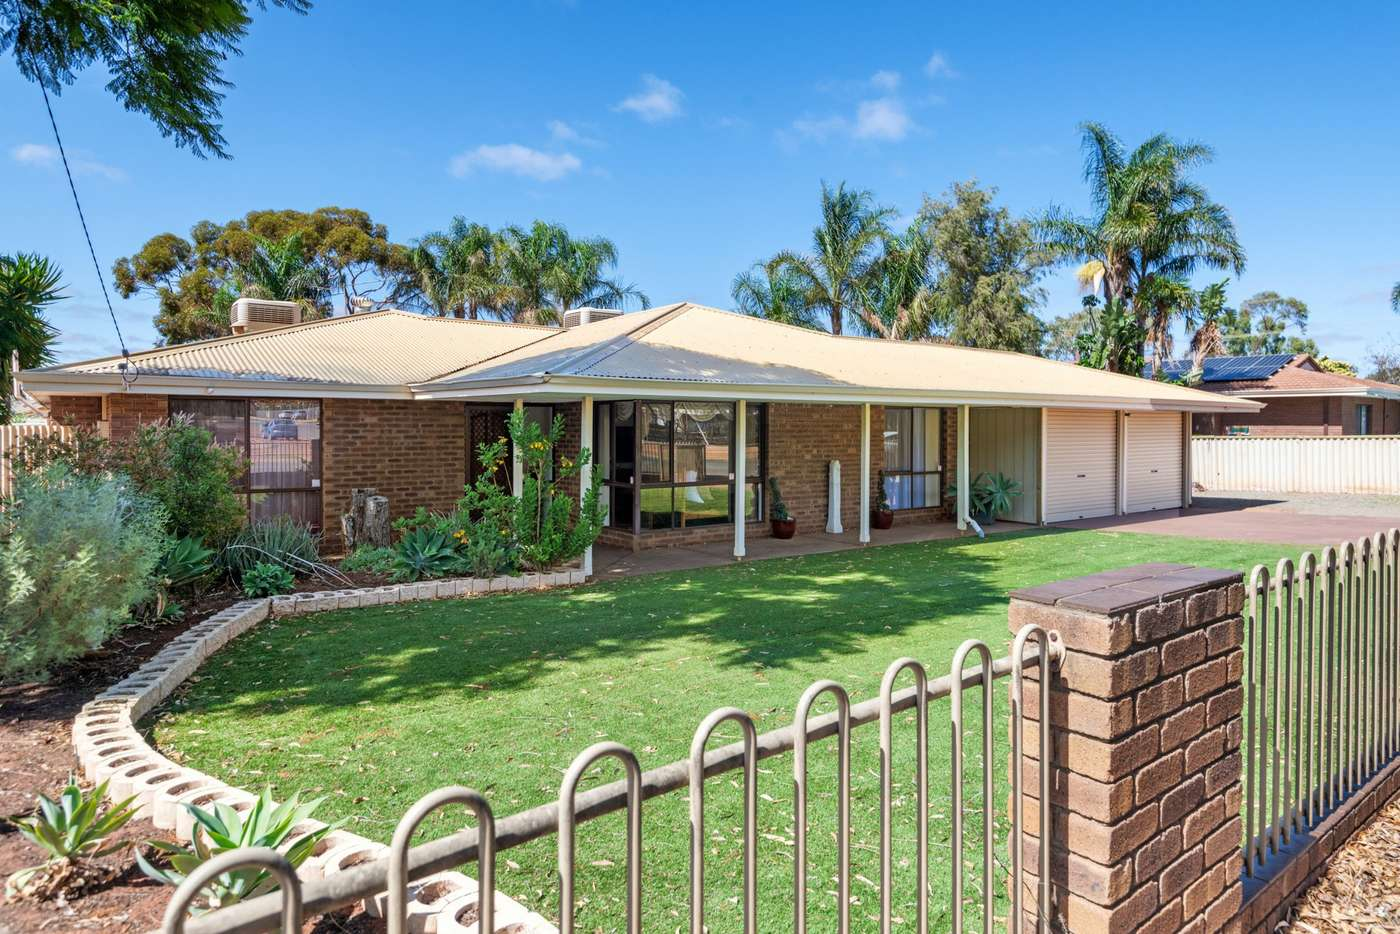 Main view of Homely house listing, 11 NANKIVILLE ROAD, Hannans WA 6430